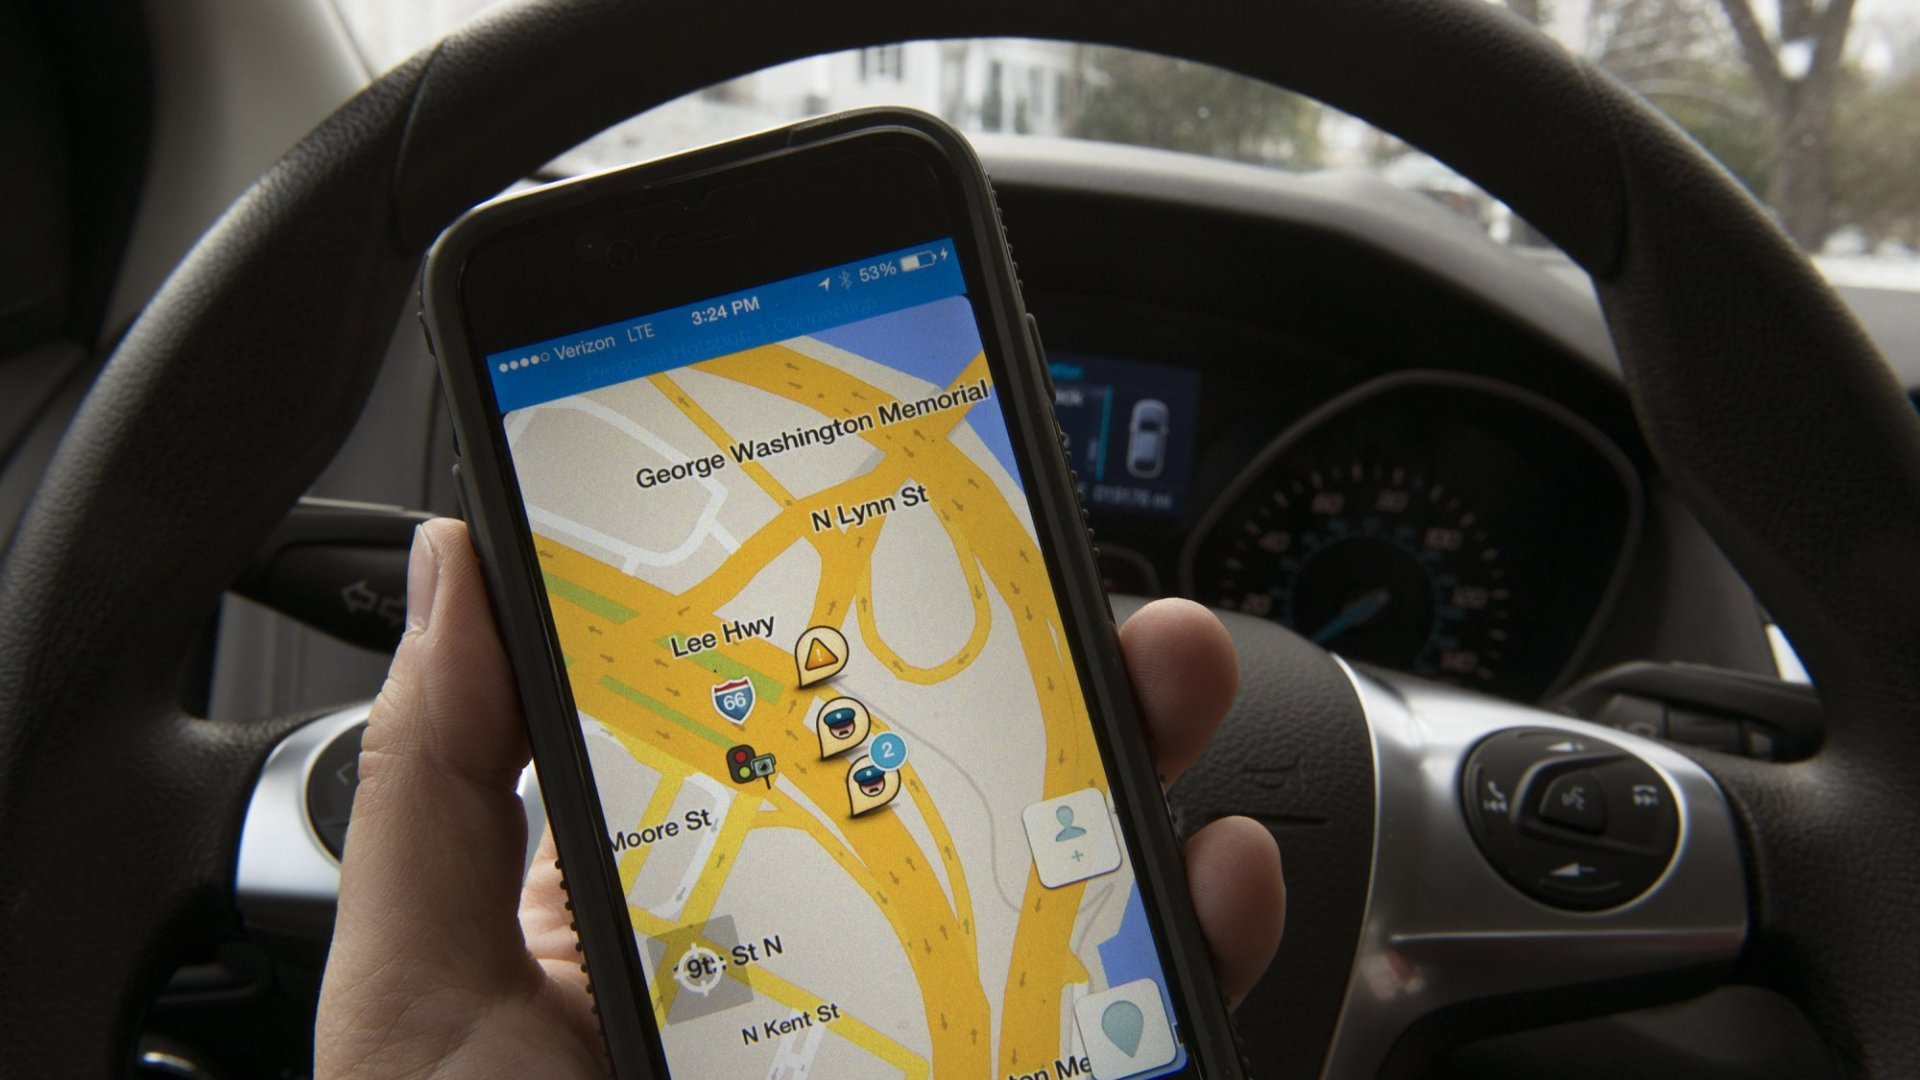 Google Reveals the Future of GPS Navigation Apps